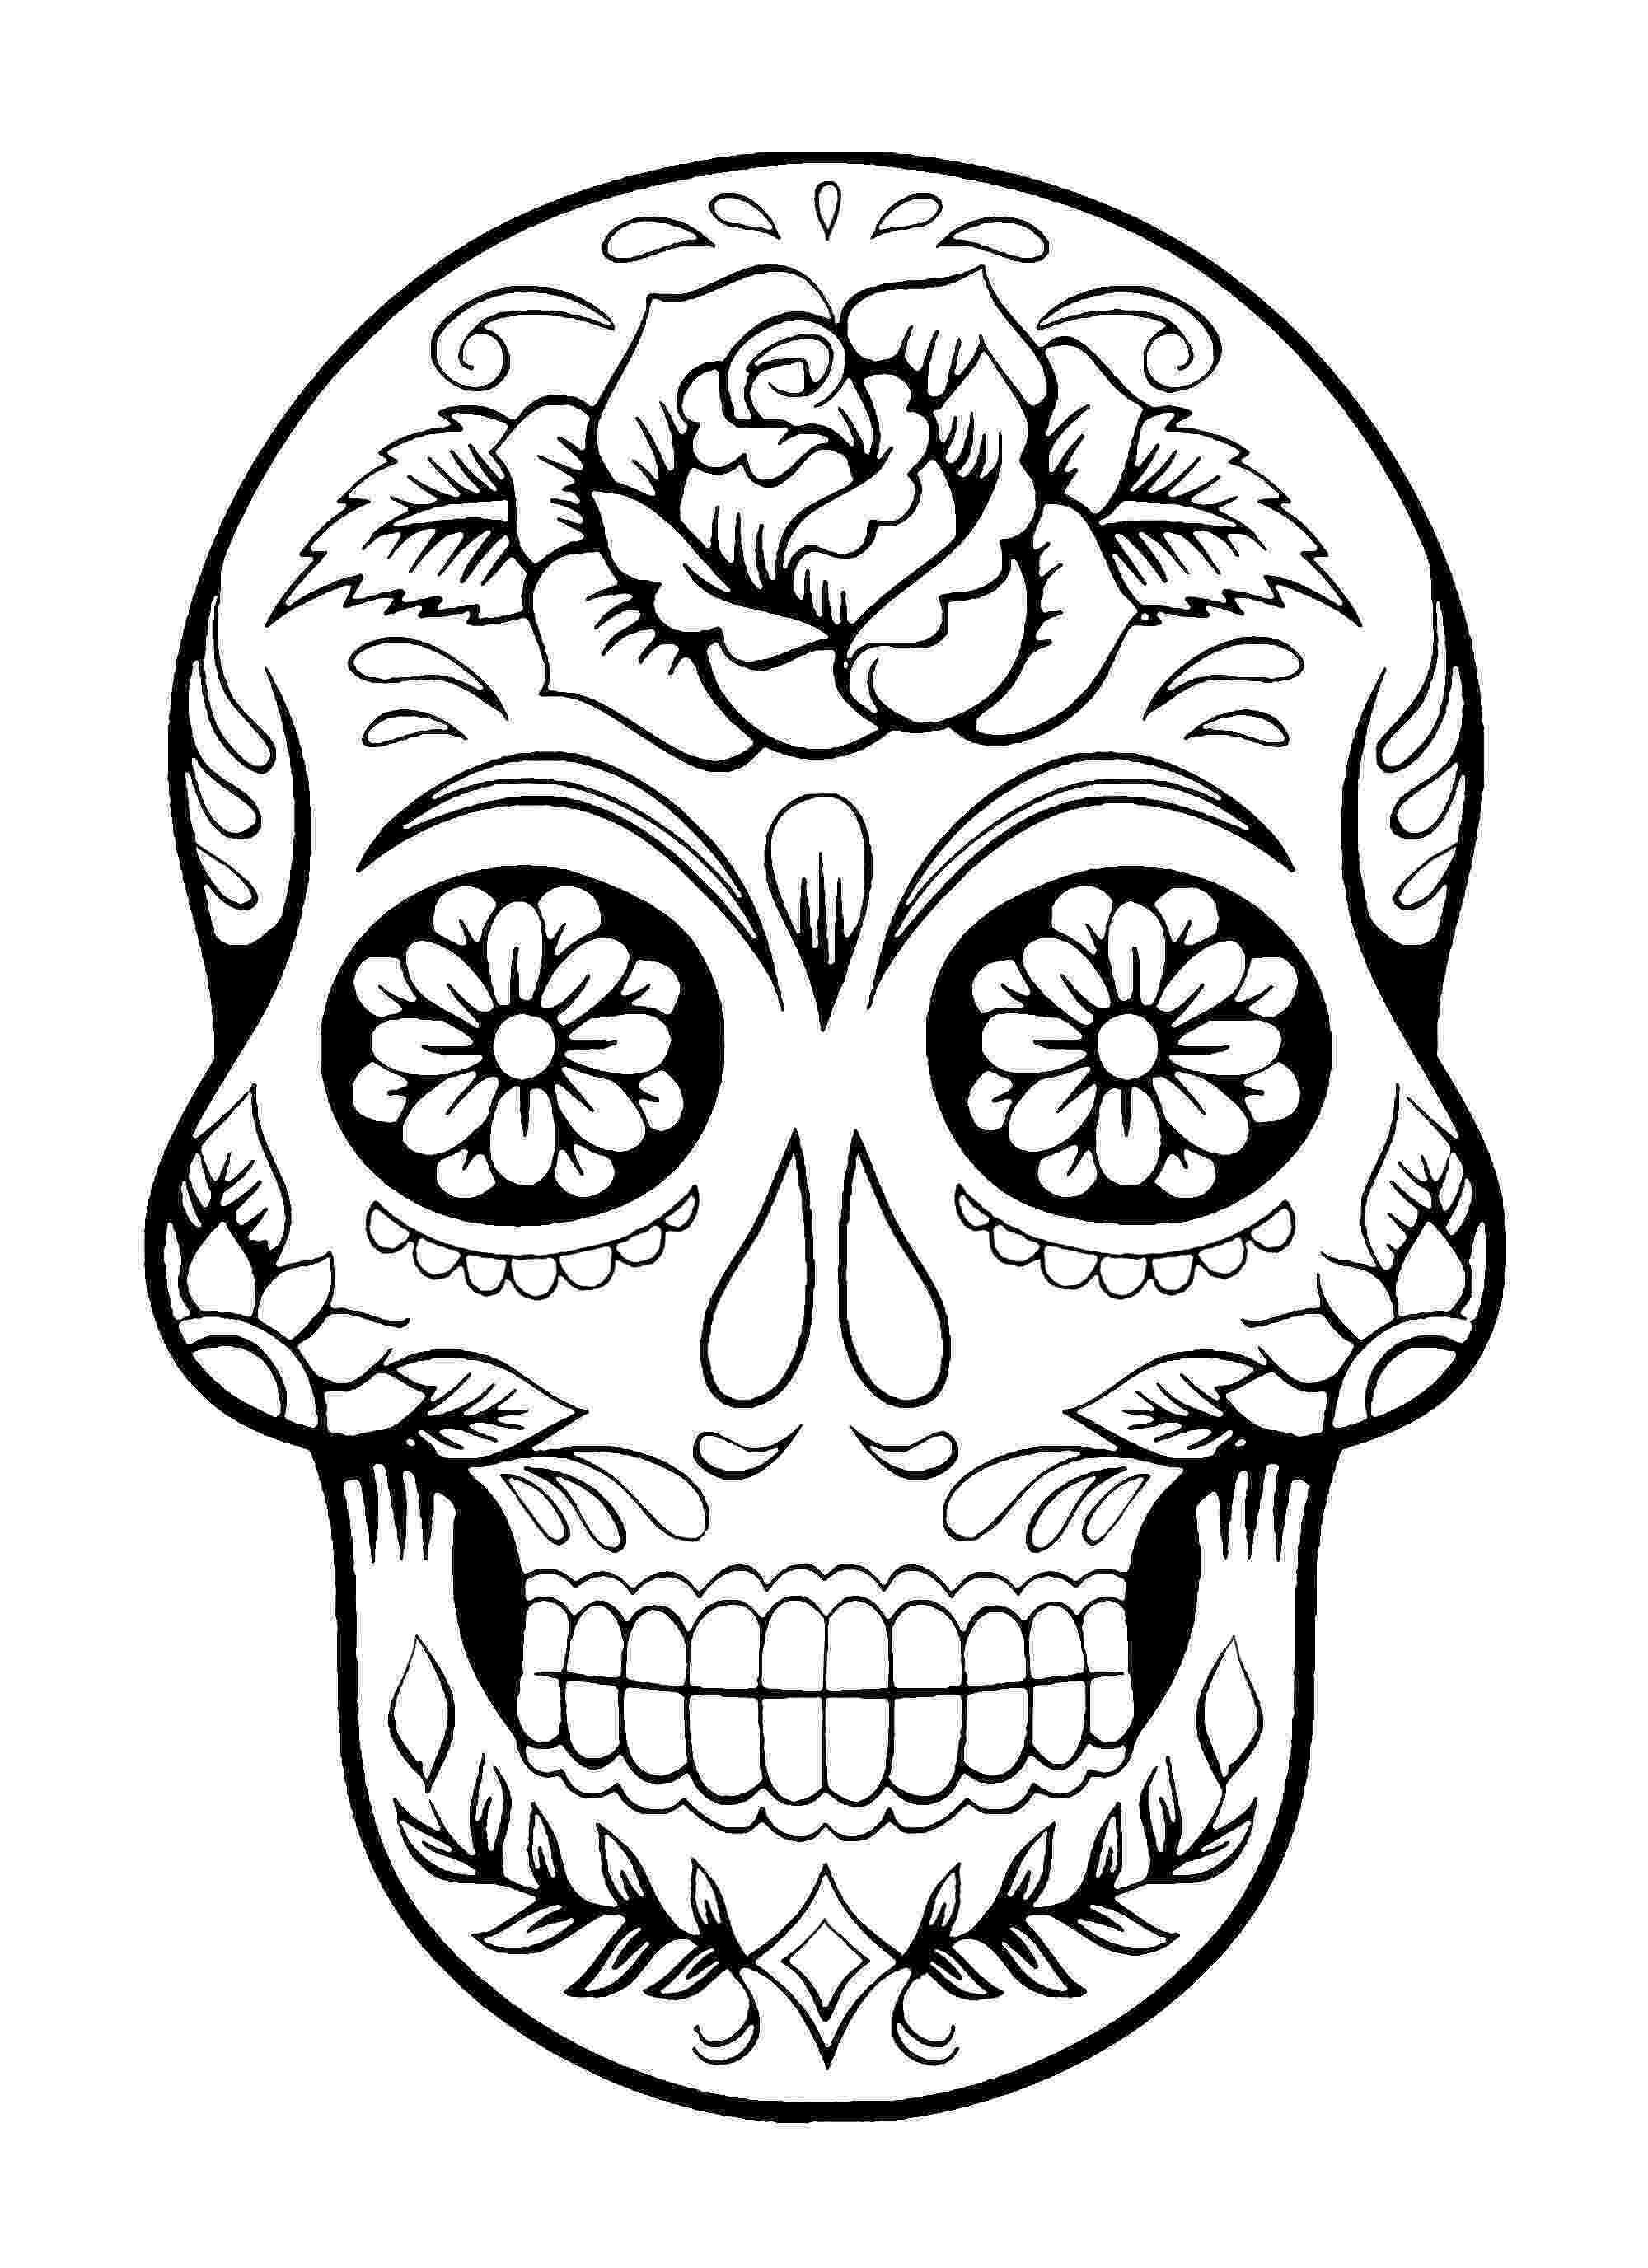 day of the dead printable pictures skull coloring pages for adults pictures printable of day the dead